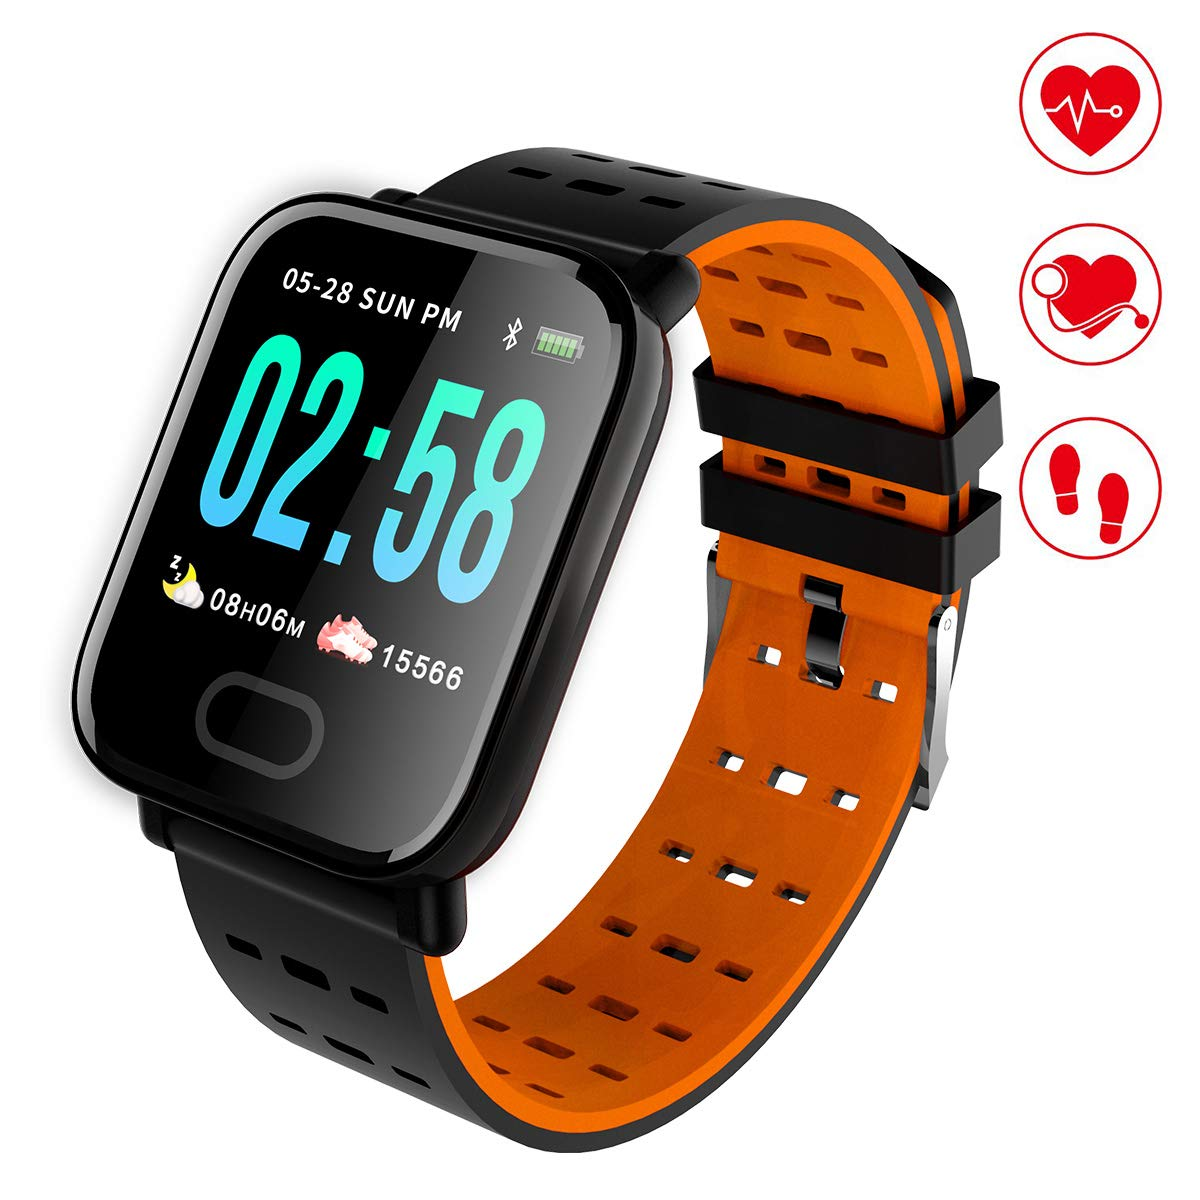 HAOHUI Fitness Tracker with Heart Rate Monitor, Color Screen Waterproof Sports Activity Tracker Smart Watch with Sleep Monitor, Step Tracker, Calorie Counter, Pedometer Watch for Kids Men Women